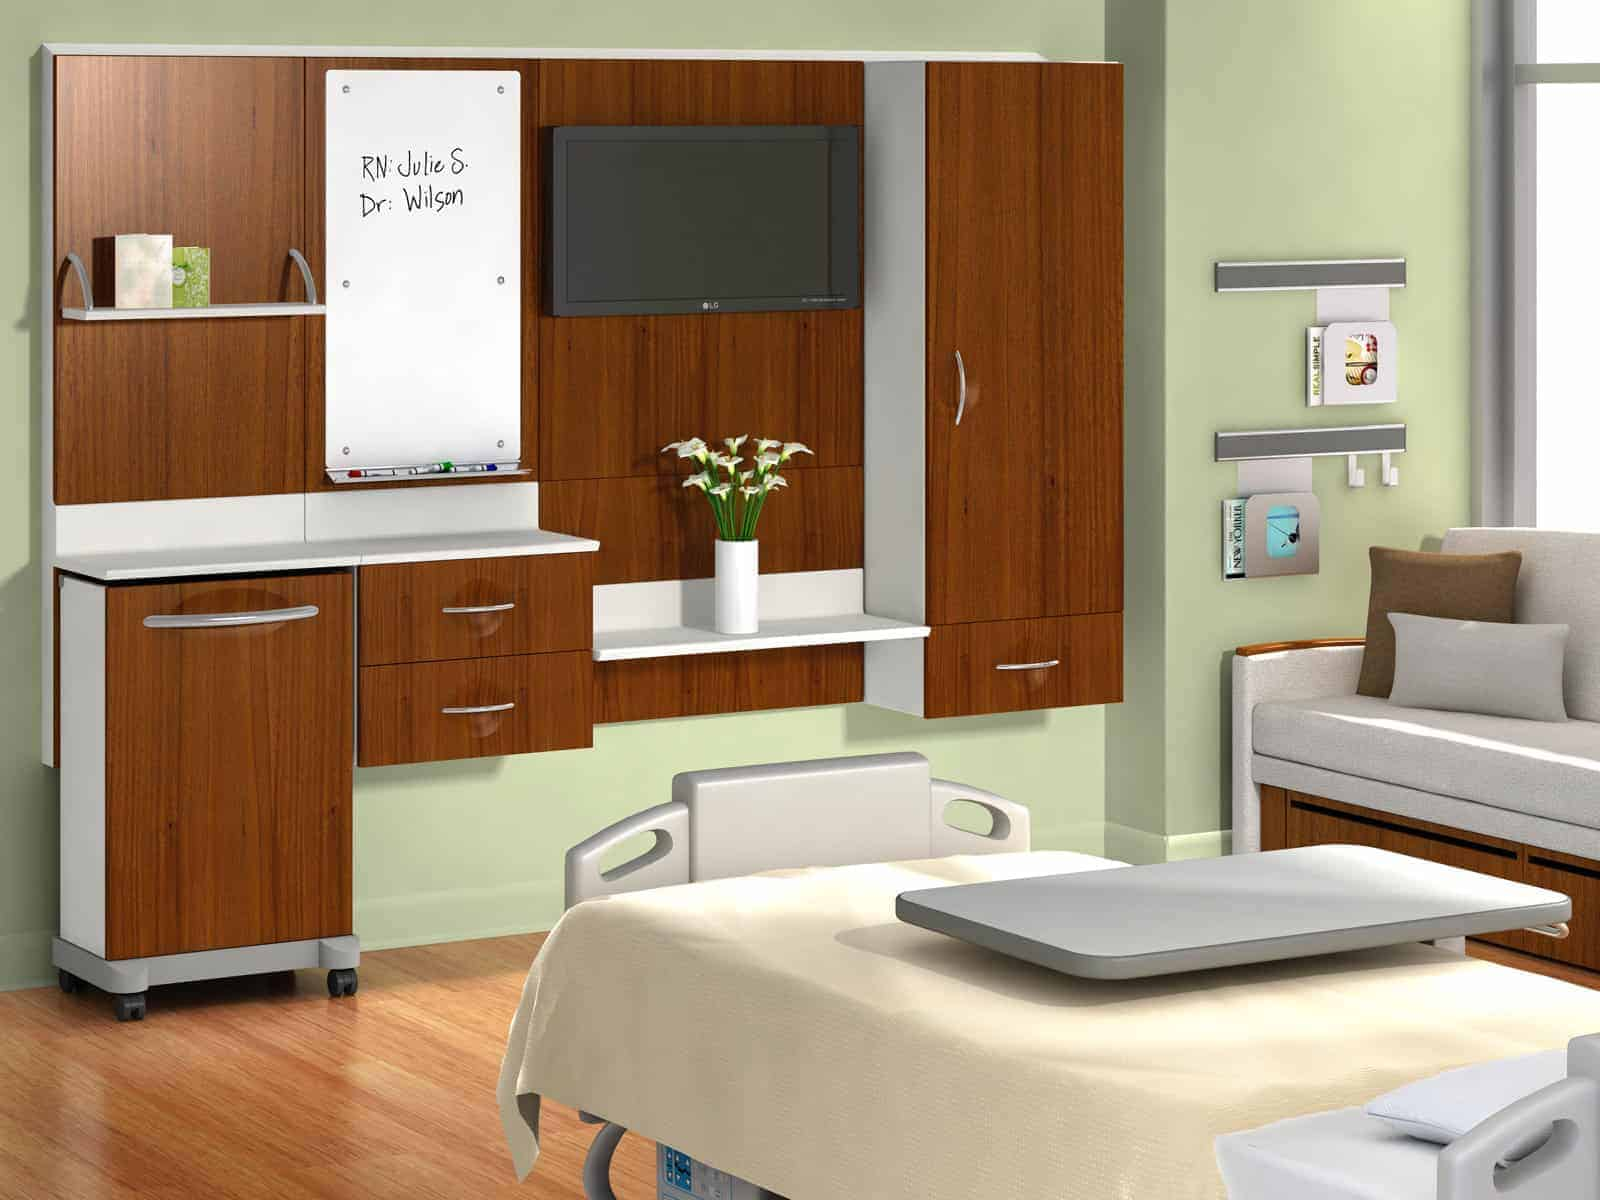 Interior Design of empty hospital room furnished with white colour bed , Monitor Trolley , Sofa Displayed